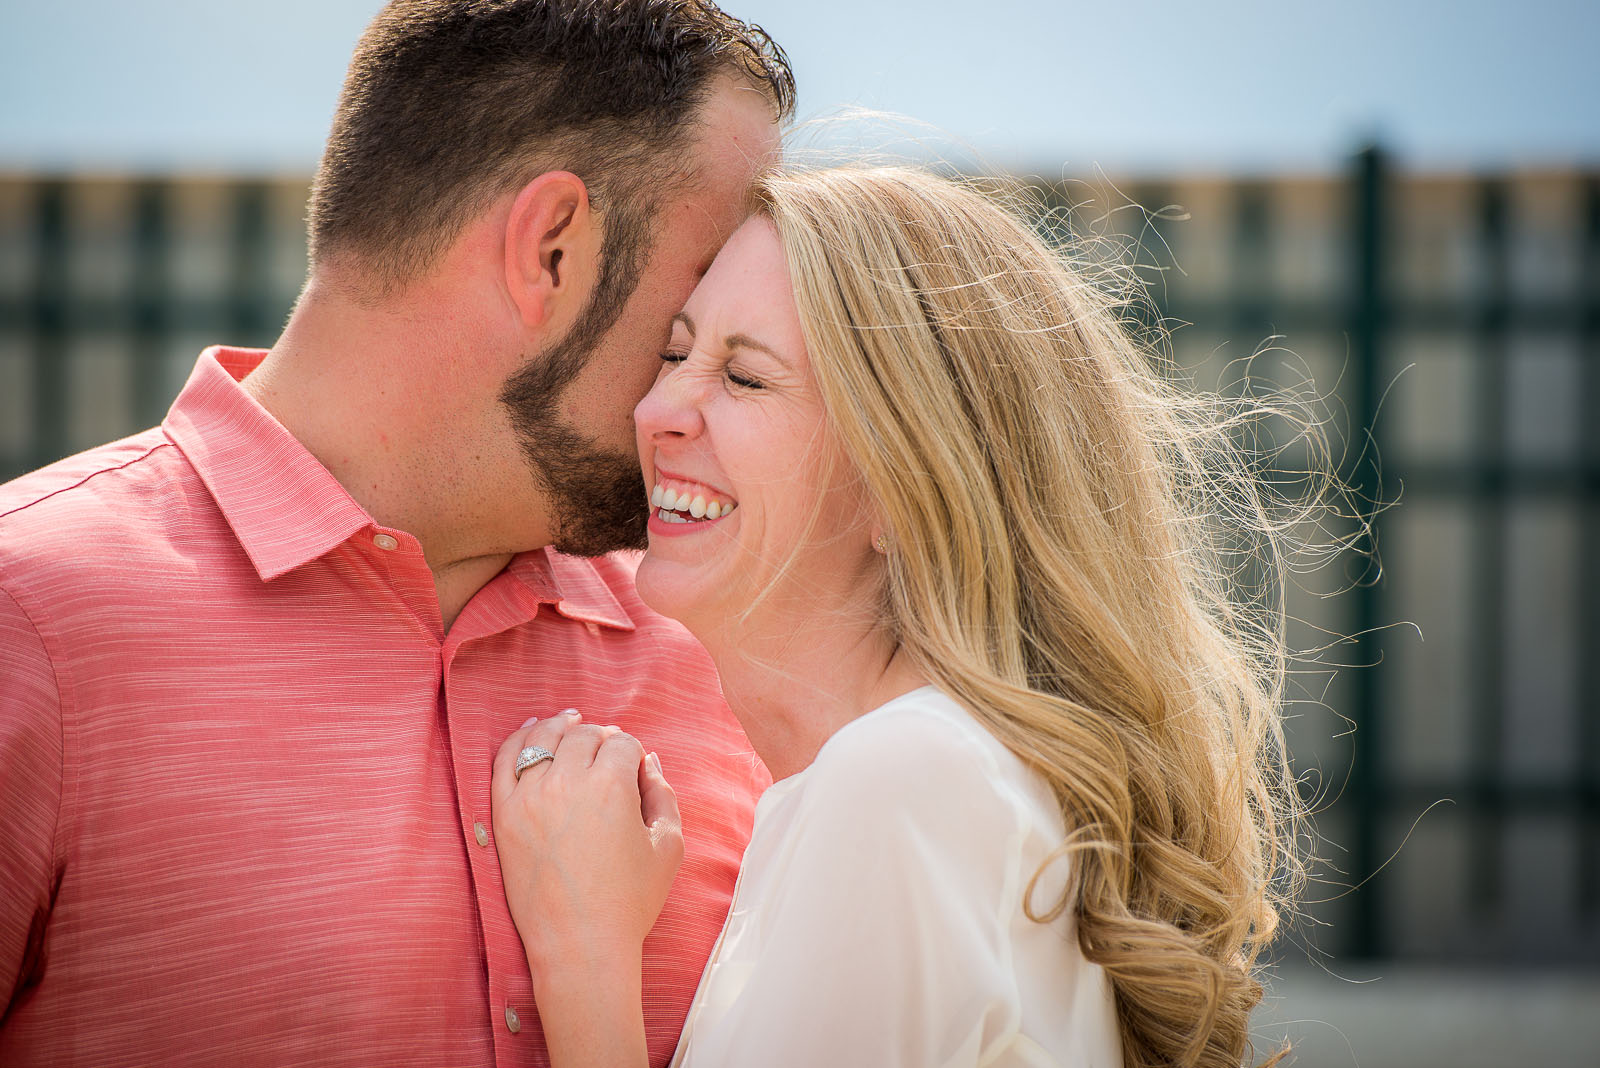 Eric_and_Christy_Photography_Blog_Kelly_Matt_Engagement-21